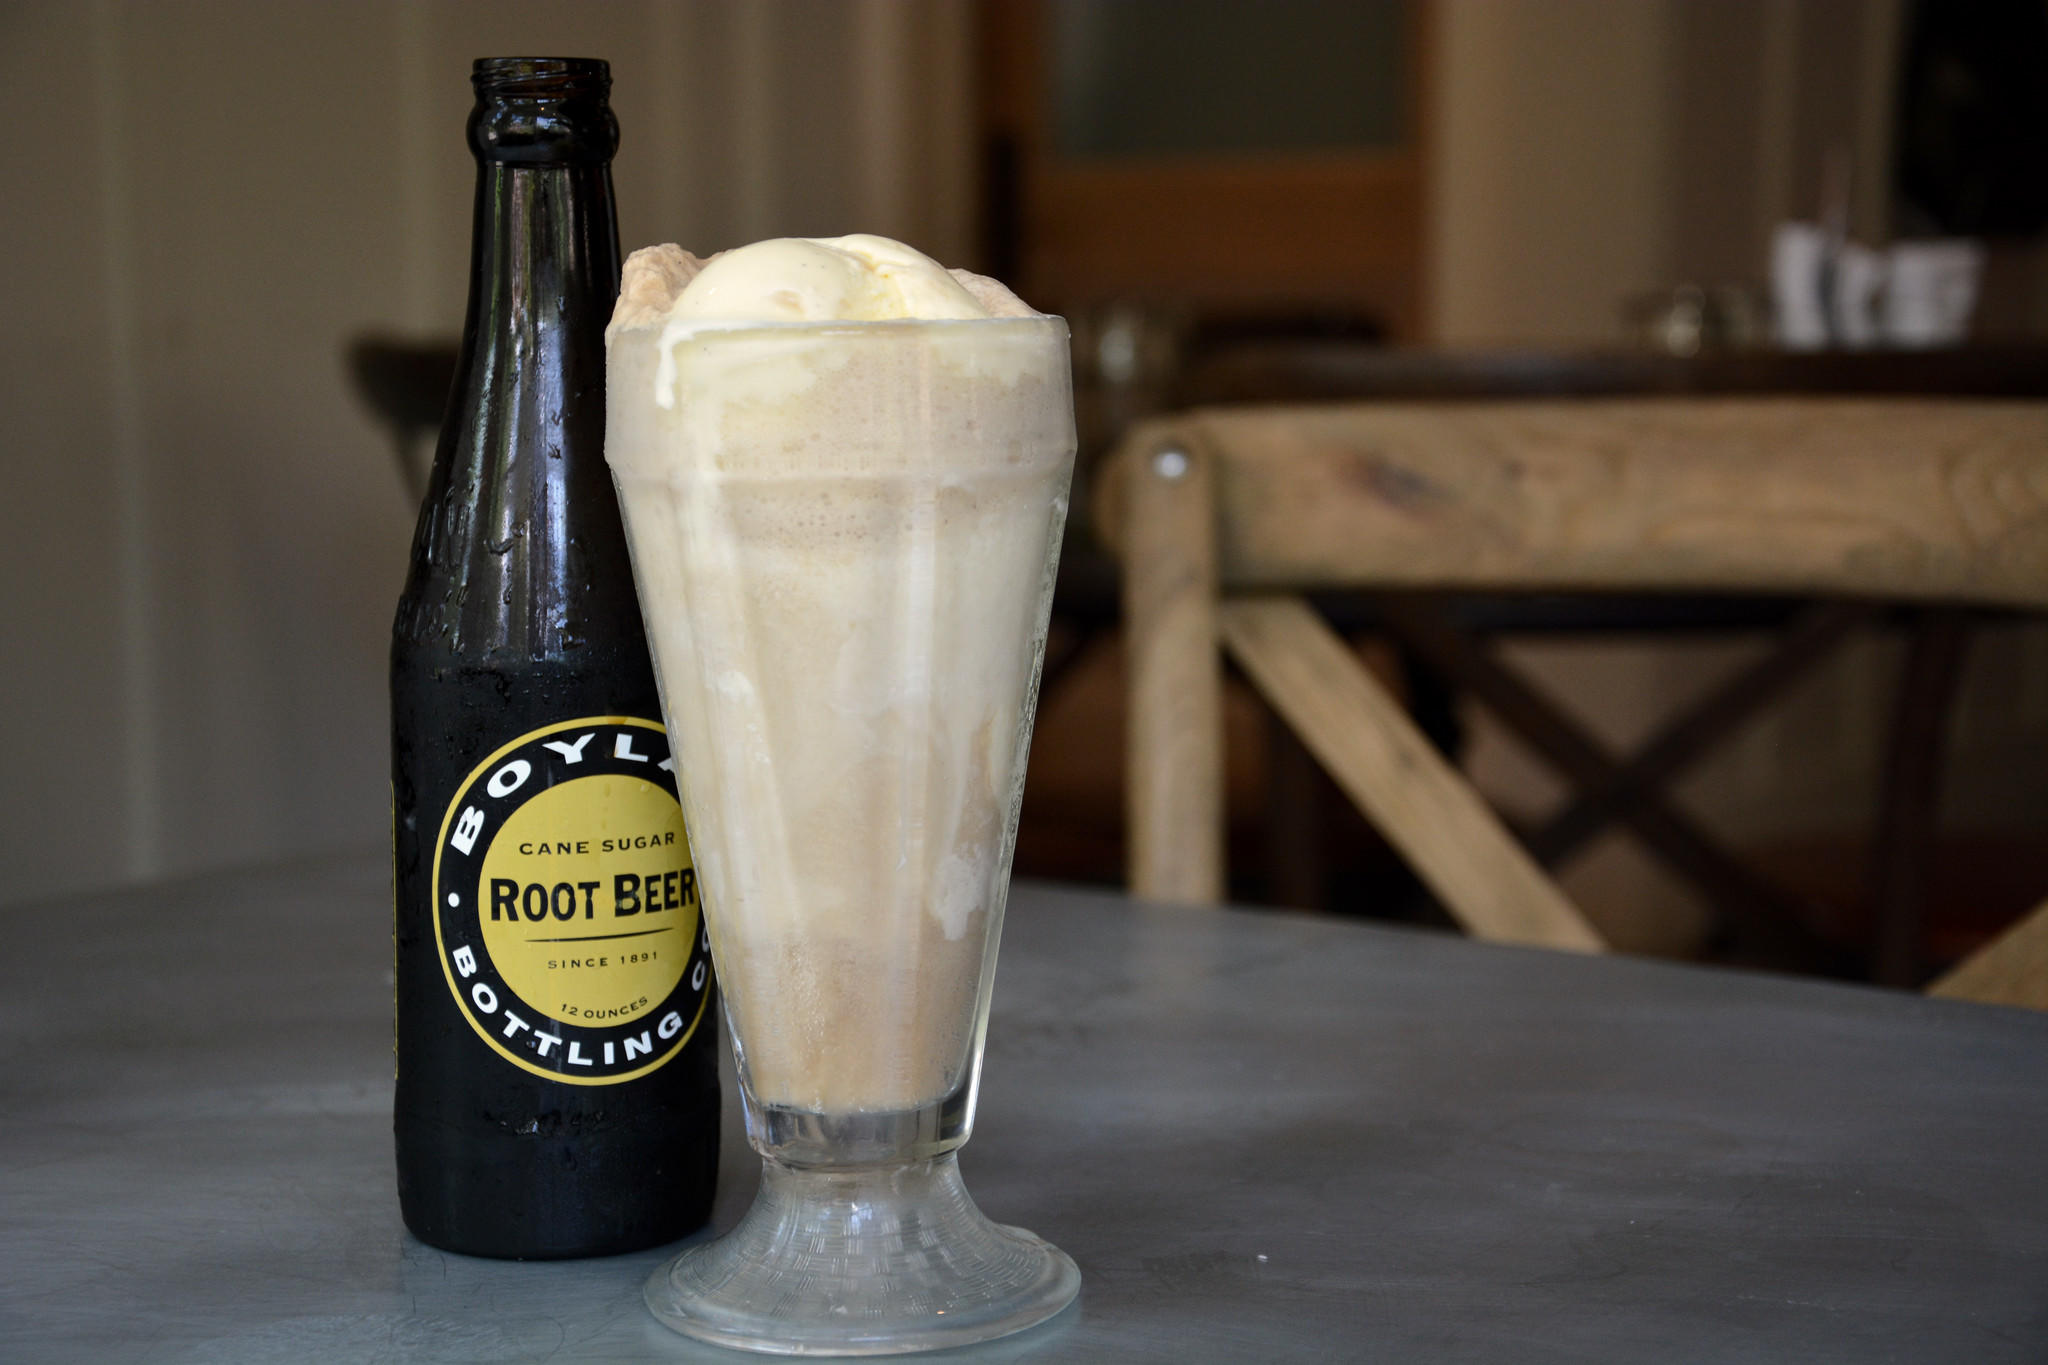 Johnny's in Roland Park will serve complimentary ice cream floats on Wednesday in honor of National Root Beer Float Day